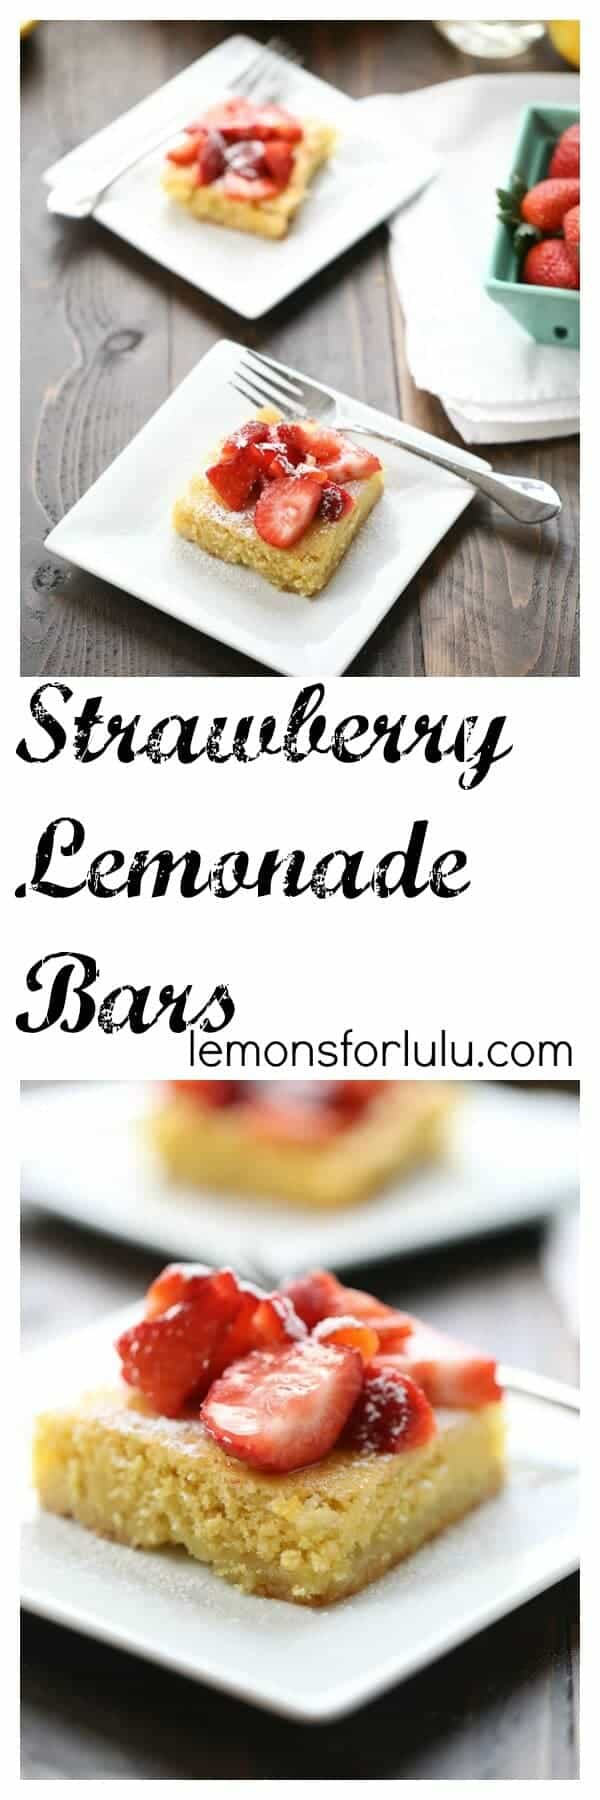 photo collage - easy strawberry lemonade bars on white serving plates.